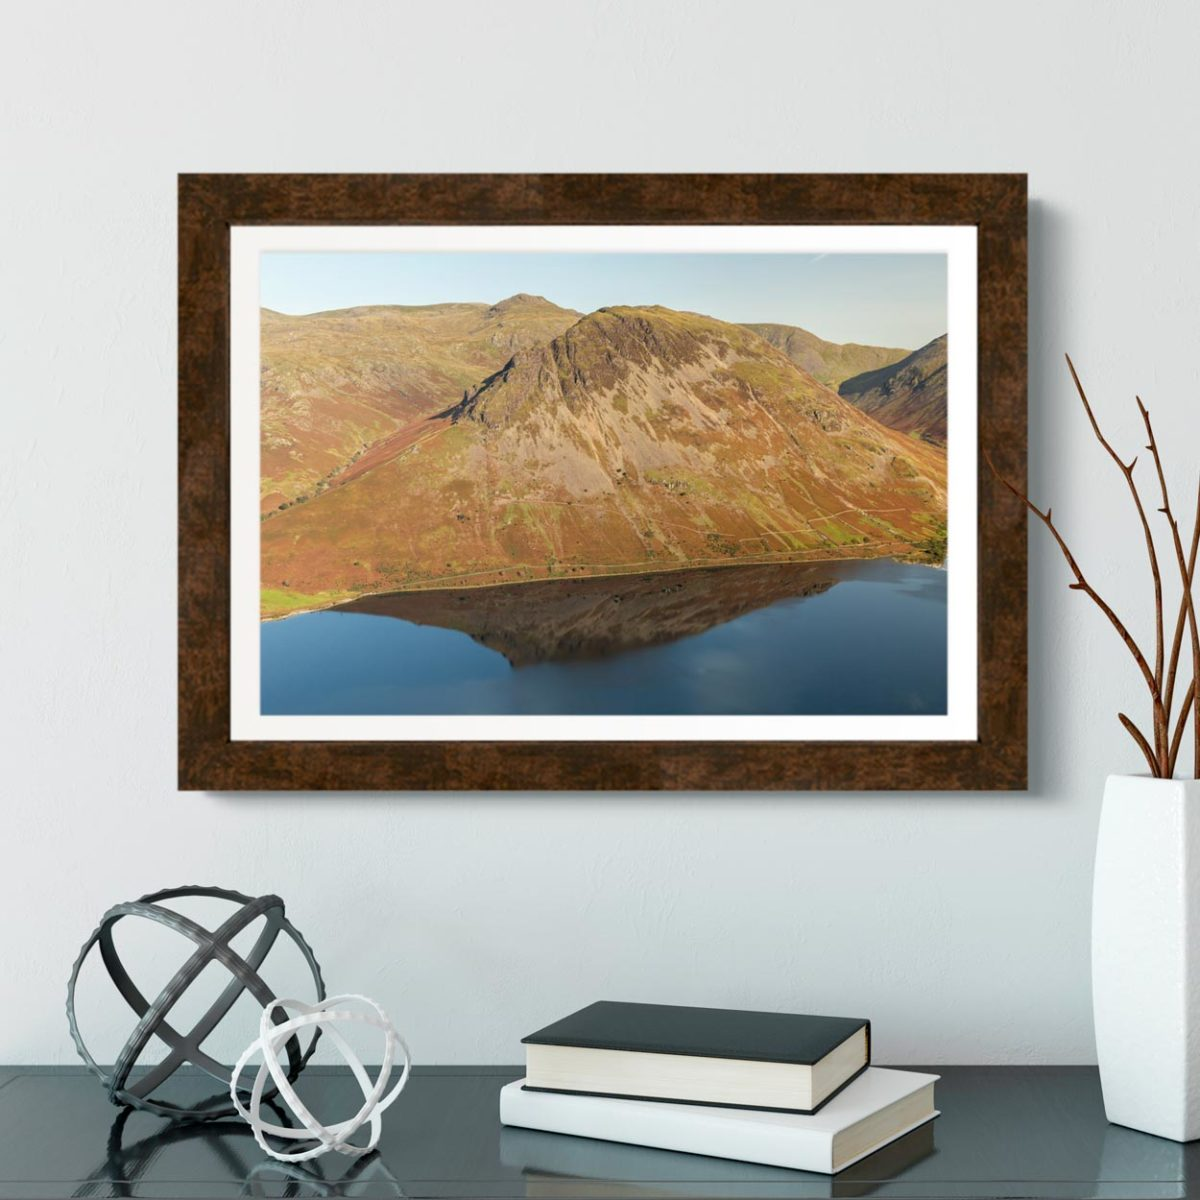 Yewbarrow Reflecting In Wastwater. The Lake District1